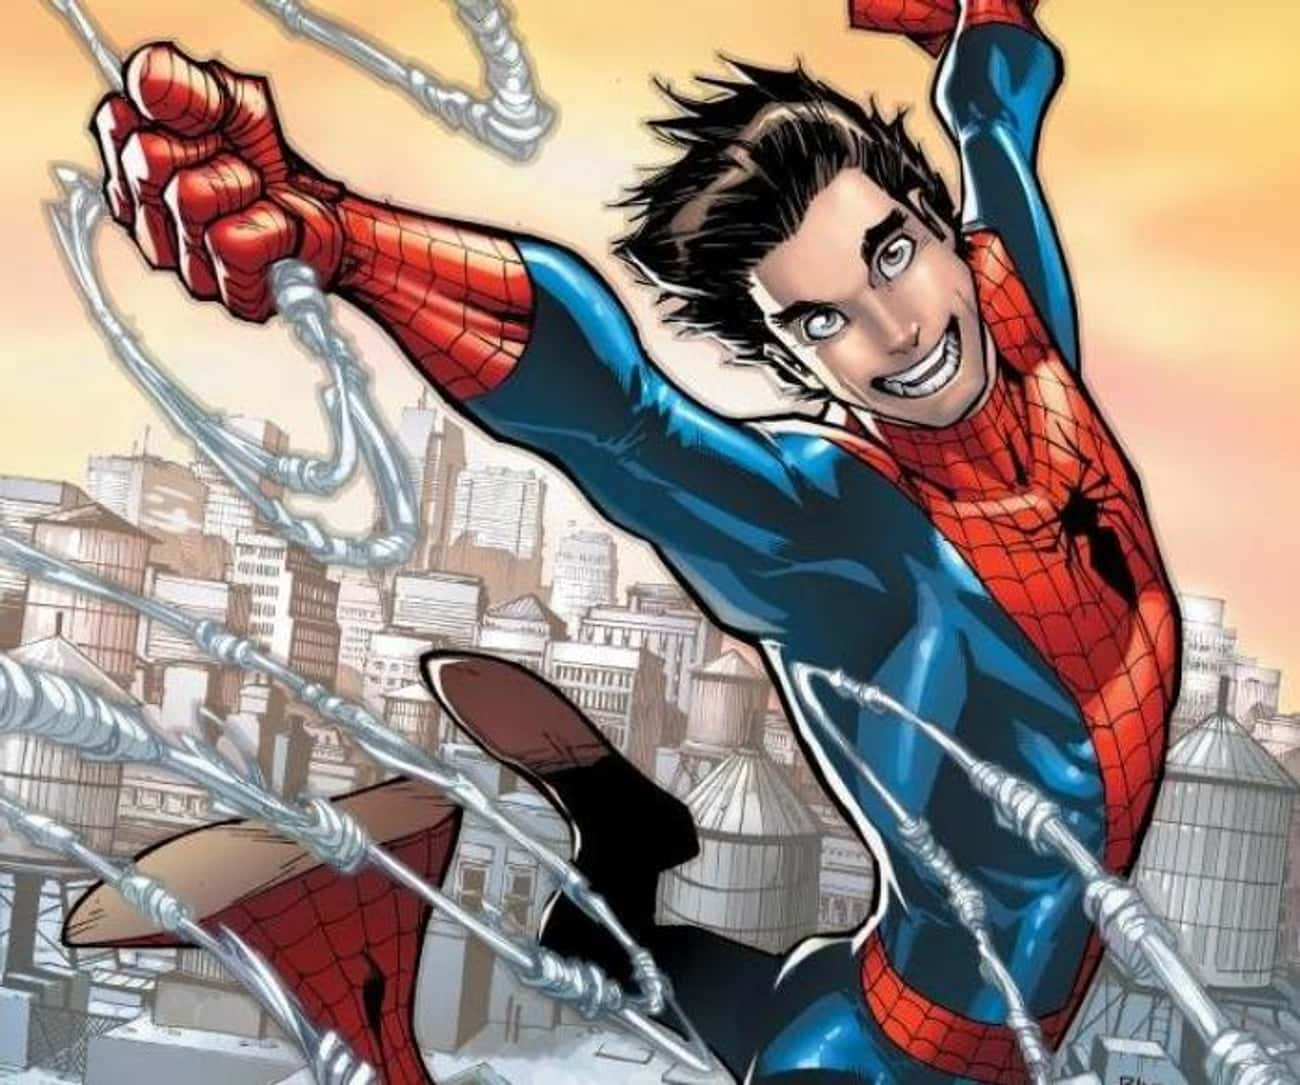 Spider-Man Now is listed (or ranked) 2 on the list Your Favorite Marvel Characters: Where Are They Now?